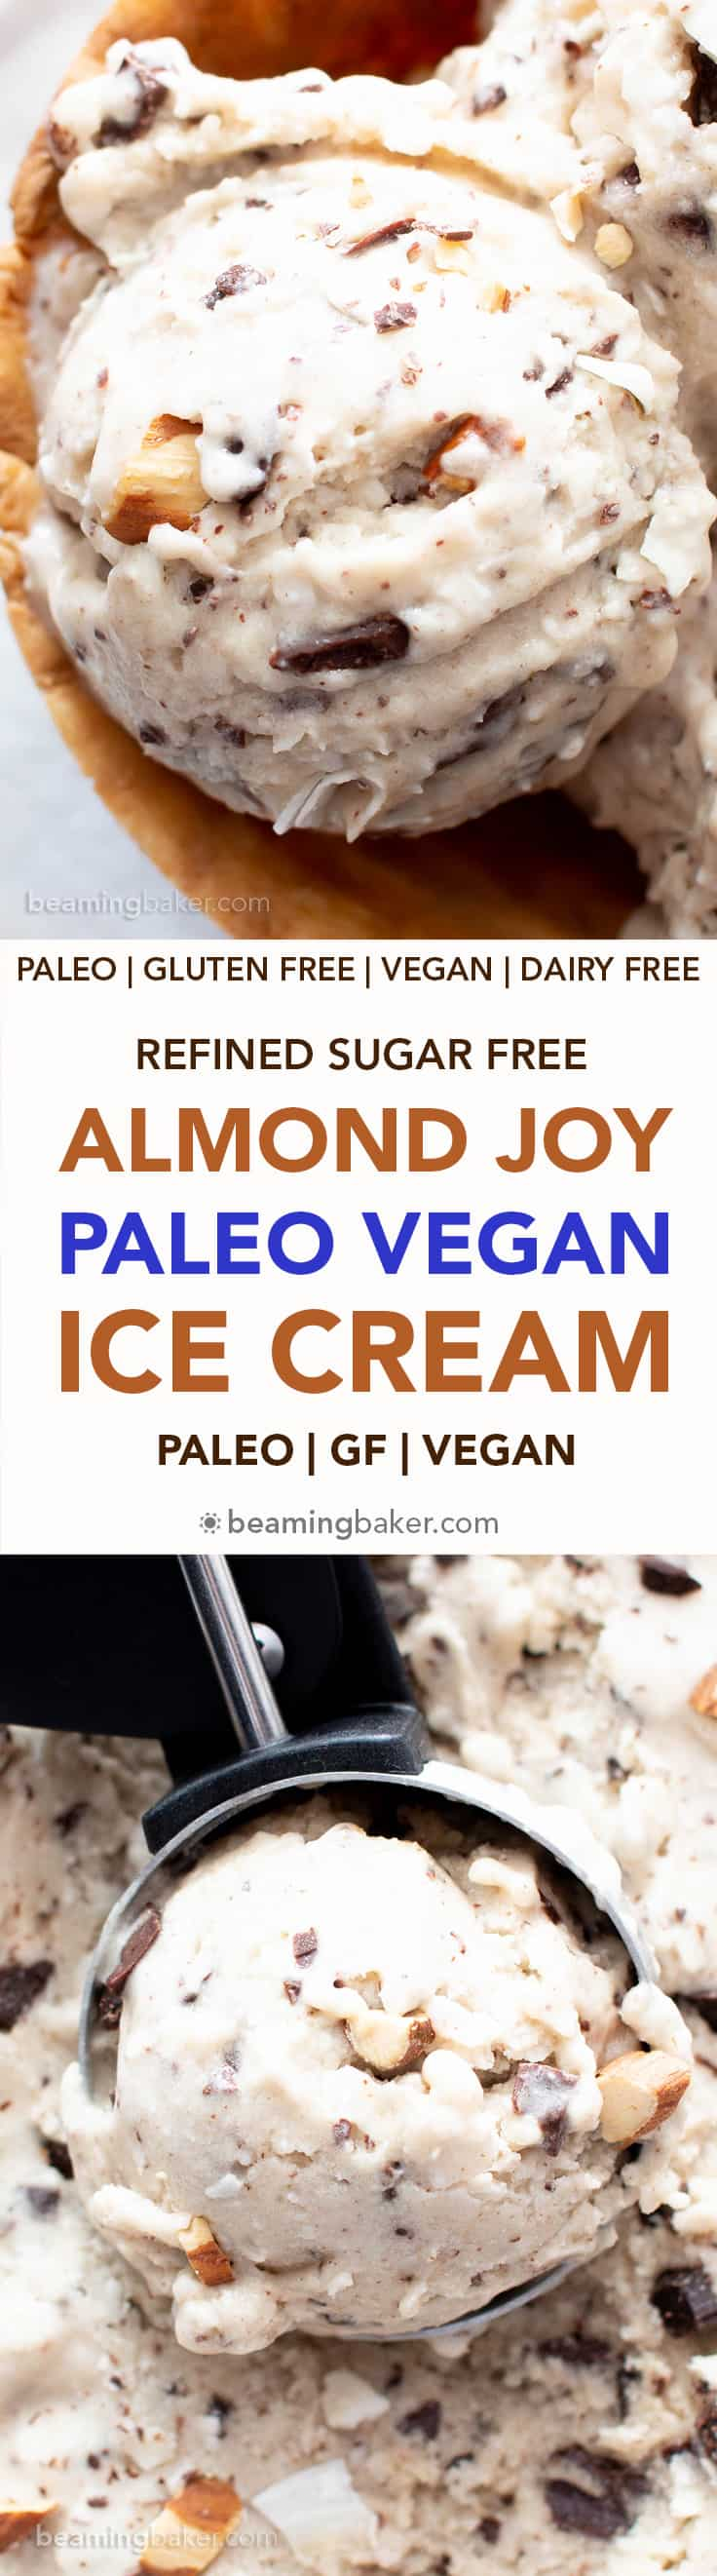 Almond Joy Vegan Paleo Ice Cream Recipe (Refined Sugar-Free): this easy, no churn ice cream is bursting with coconut, chocolate and Almond JOY flavors! Gluten free, Dairy free, Delicious. #Paleo #Vegan #IceCream #AlmondJoy #DairyFree | Recipe at BeamingBaker.com